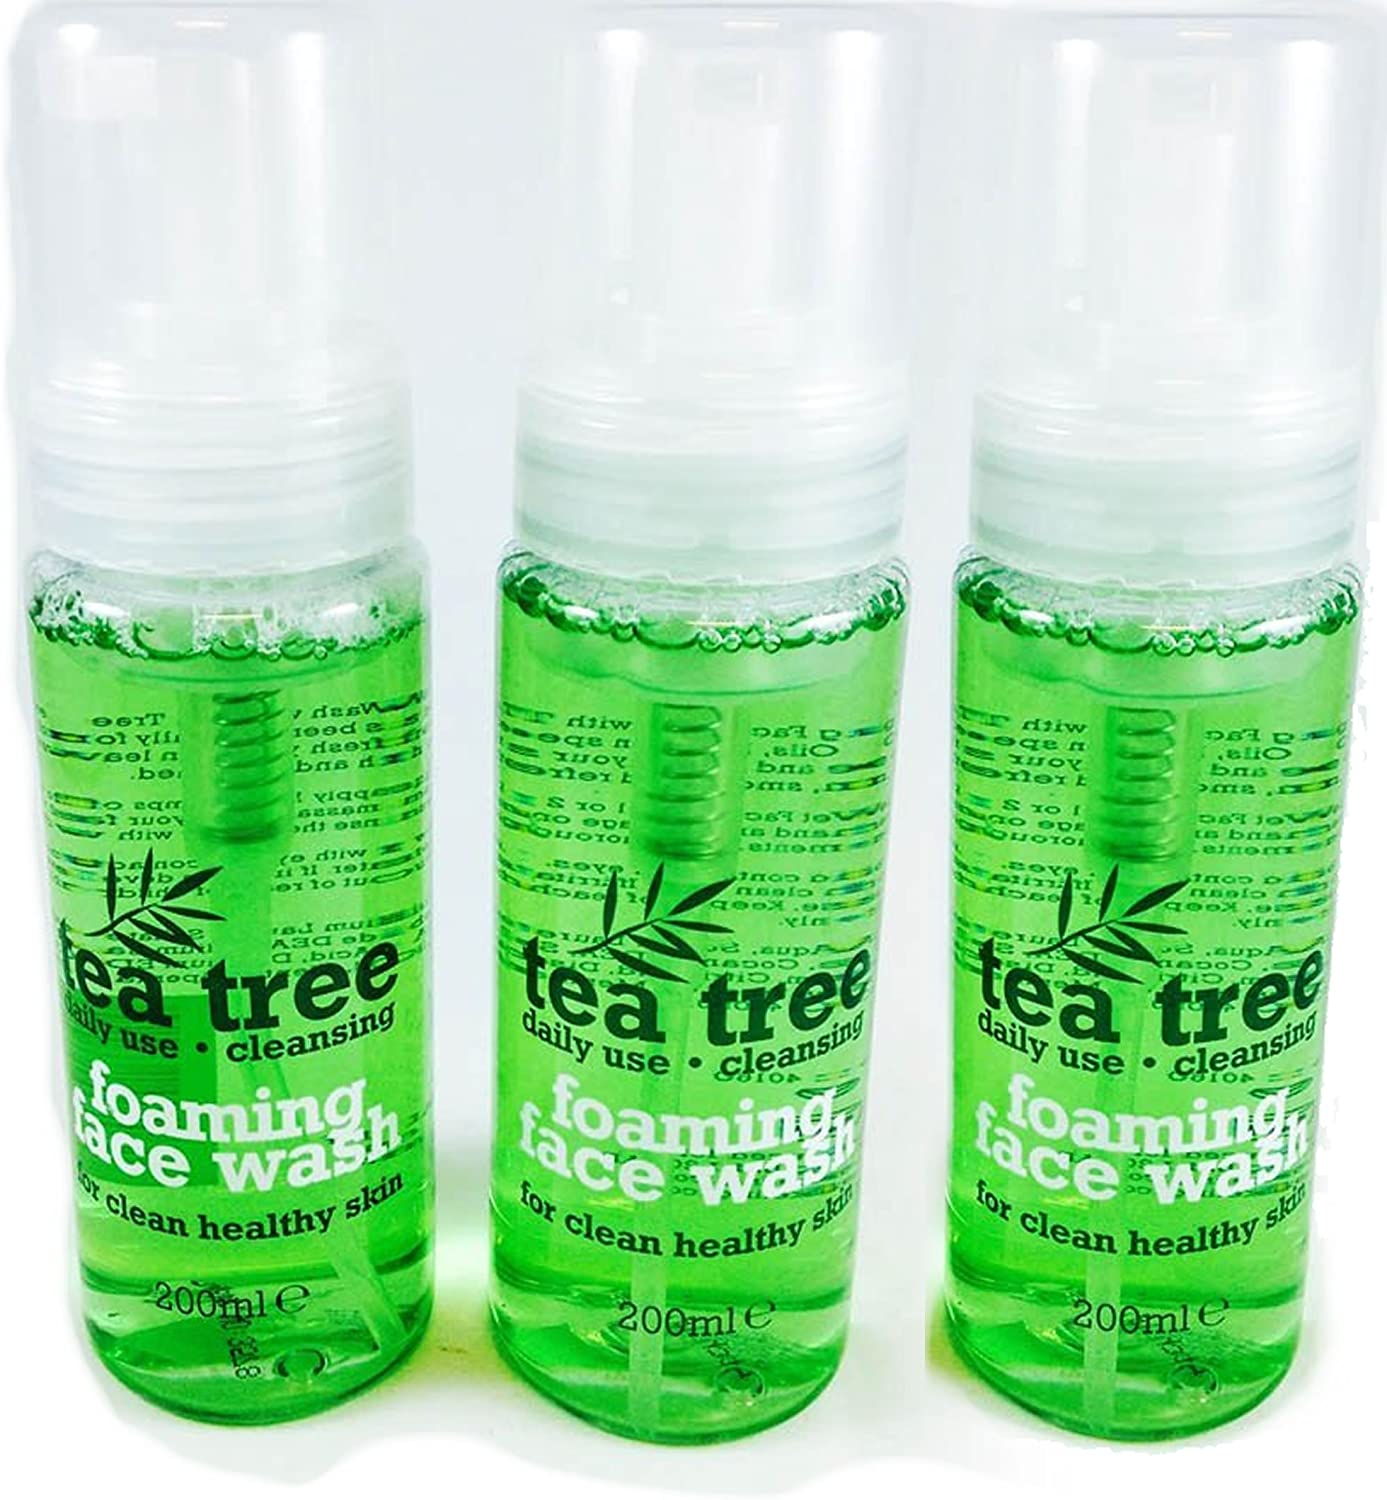 Tea Tree Foaming Face Wash 200ml (Pack of 3)